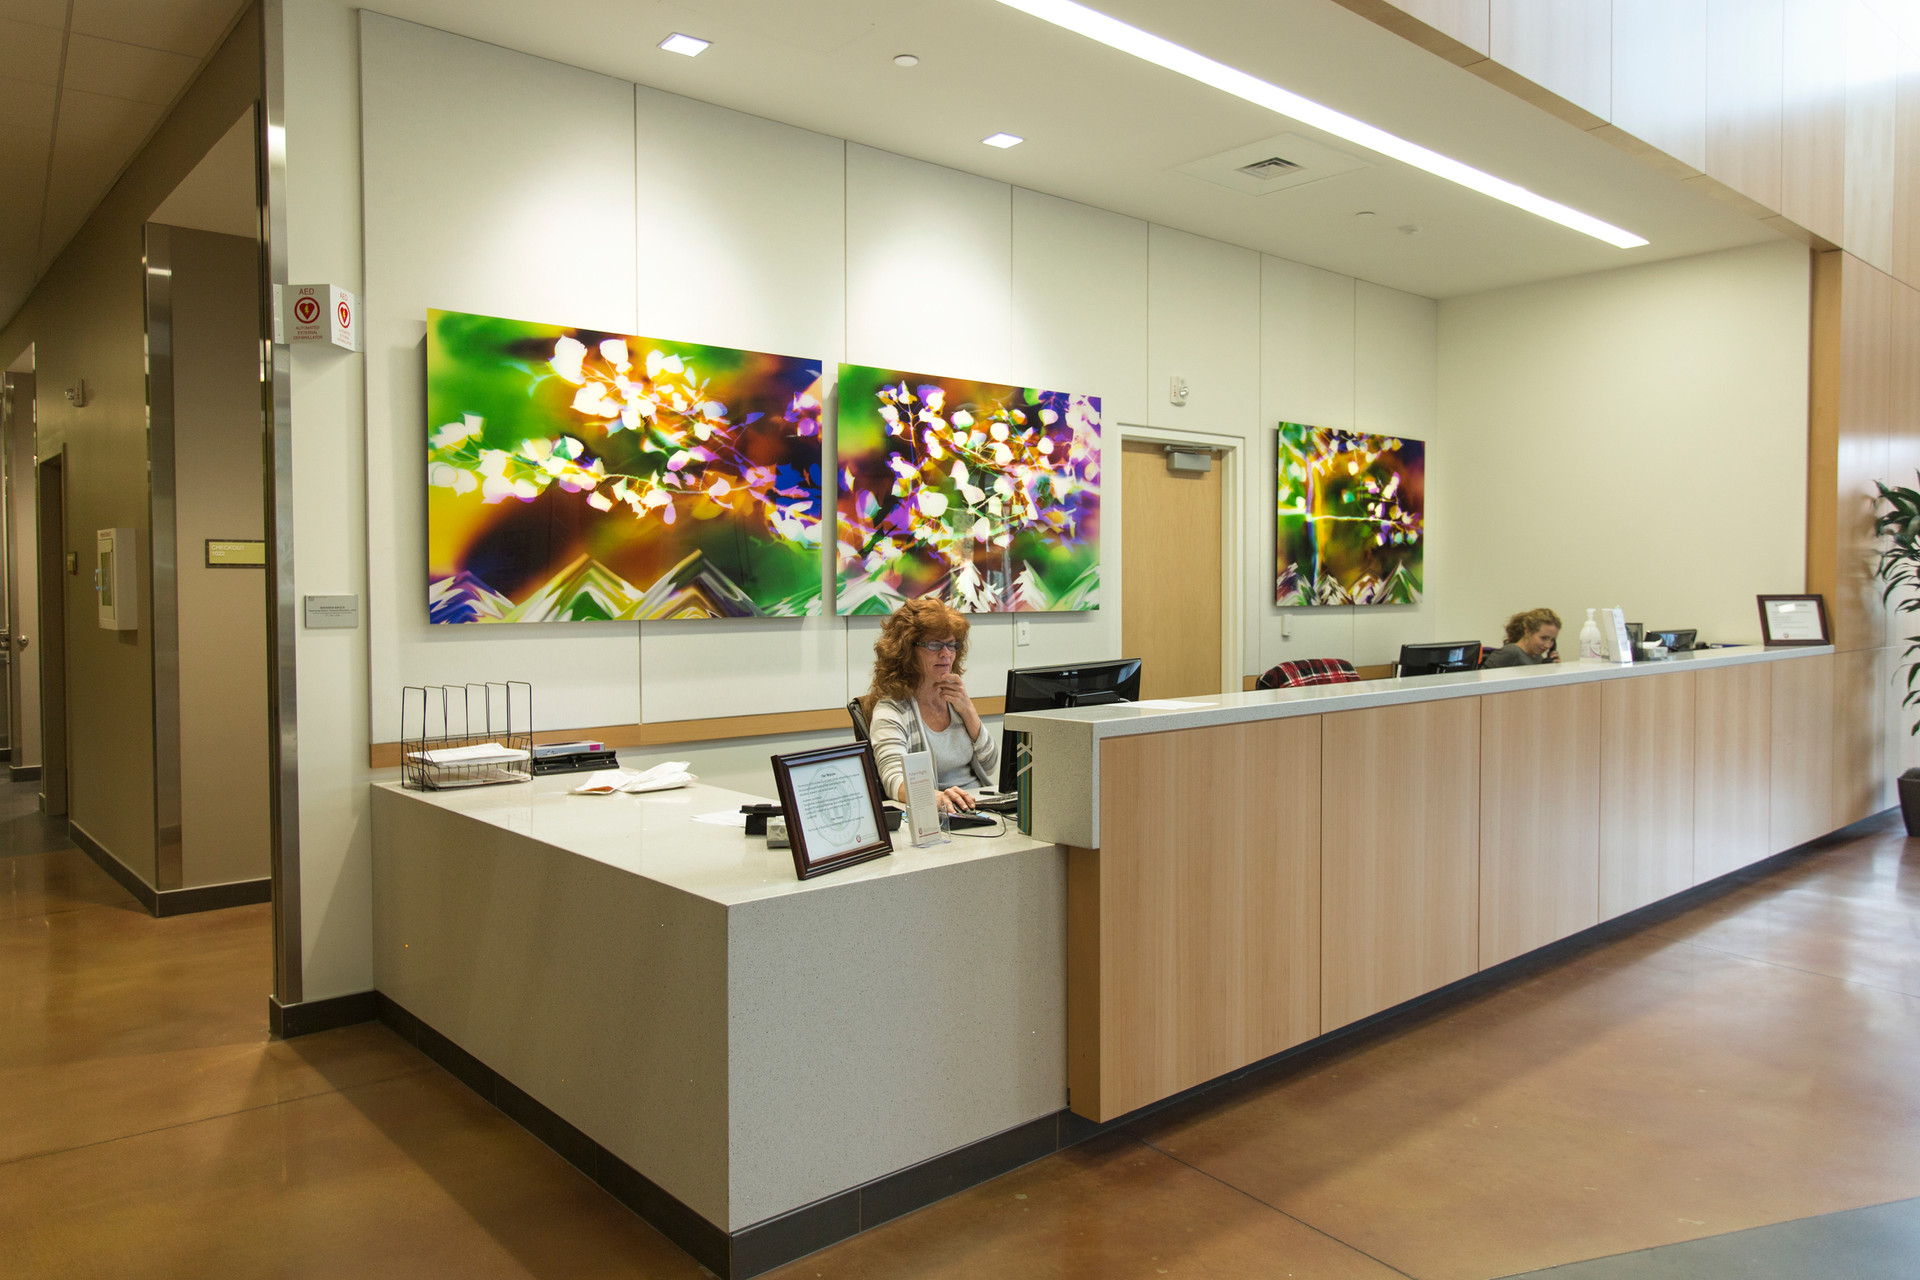 "Inspired by Nature: Harmony Mountains, 40"" x 180"" (3 40"" x 60"" panels), Commission by Utah Public Art Program, Installed in Noorda School of Dentistry at University of Utah, Salt Lake City, UT"